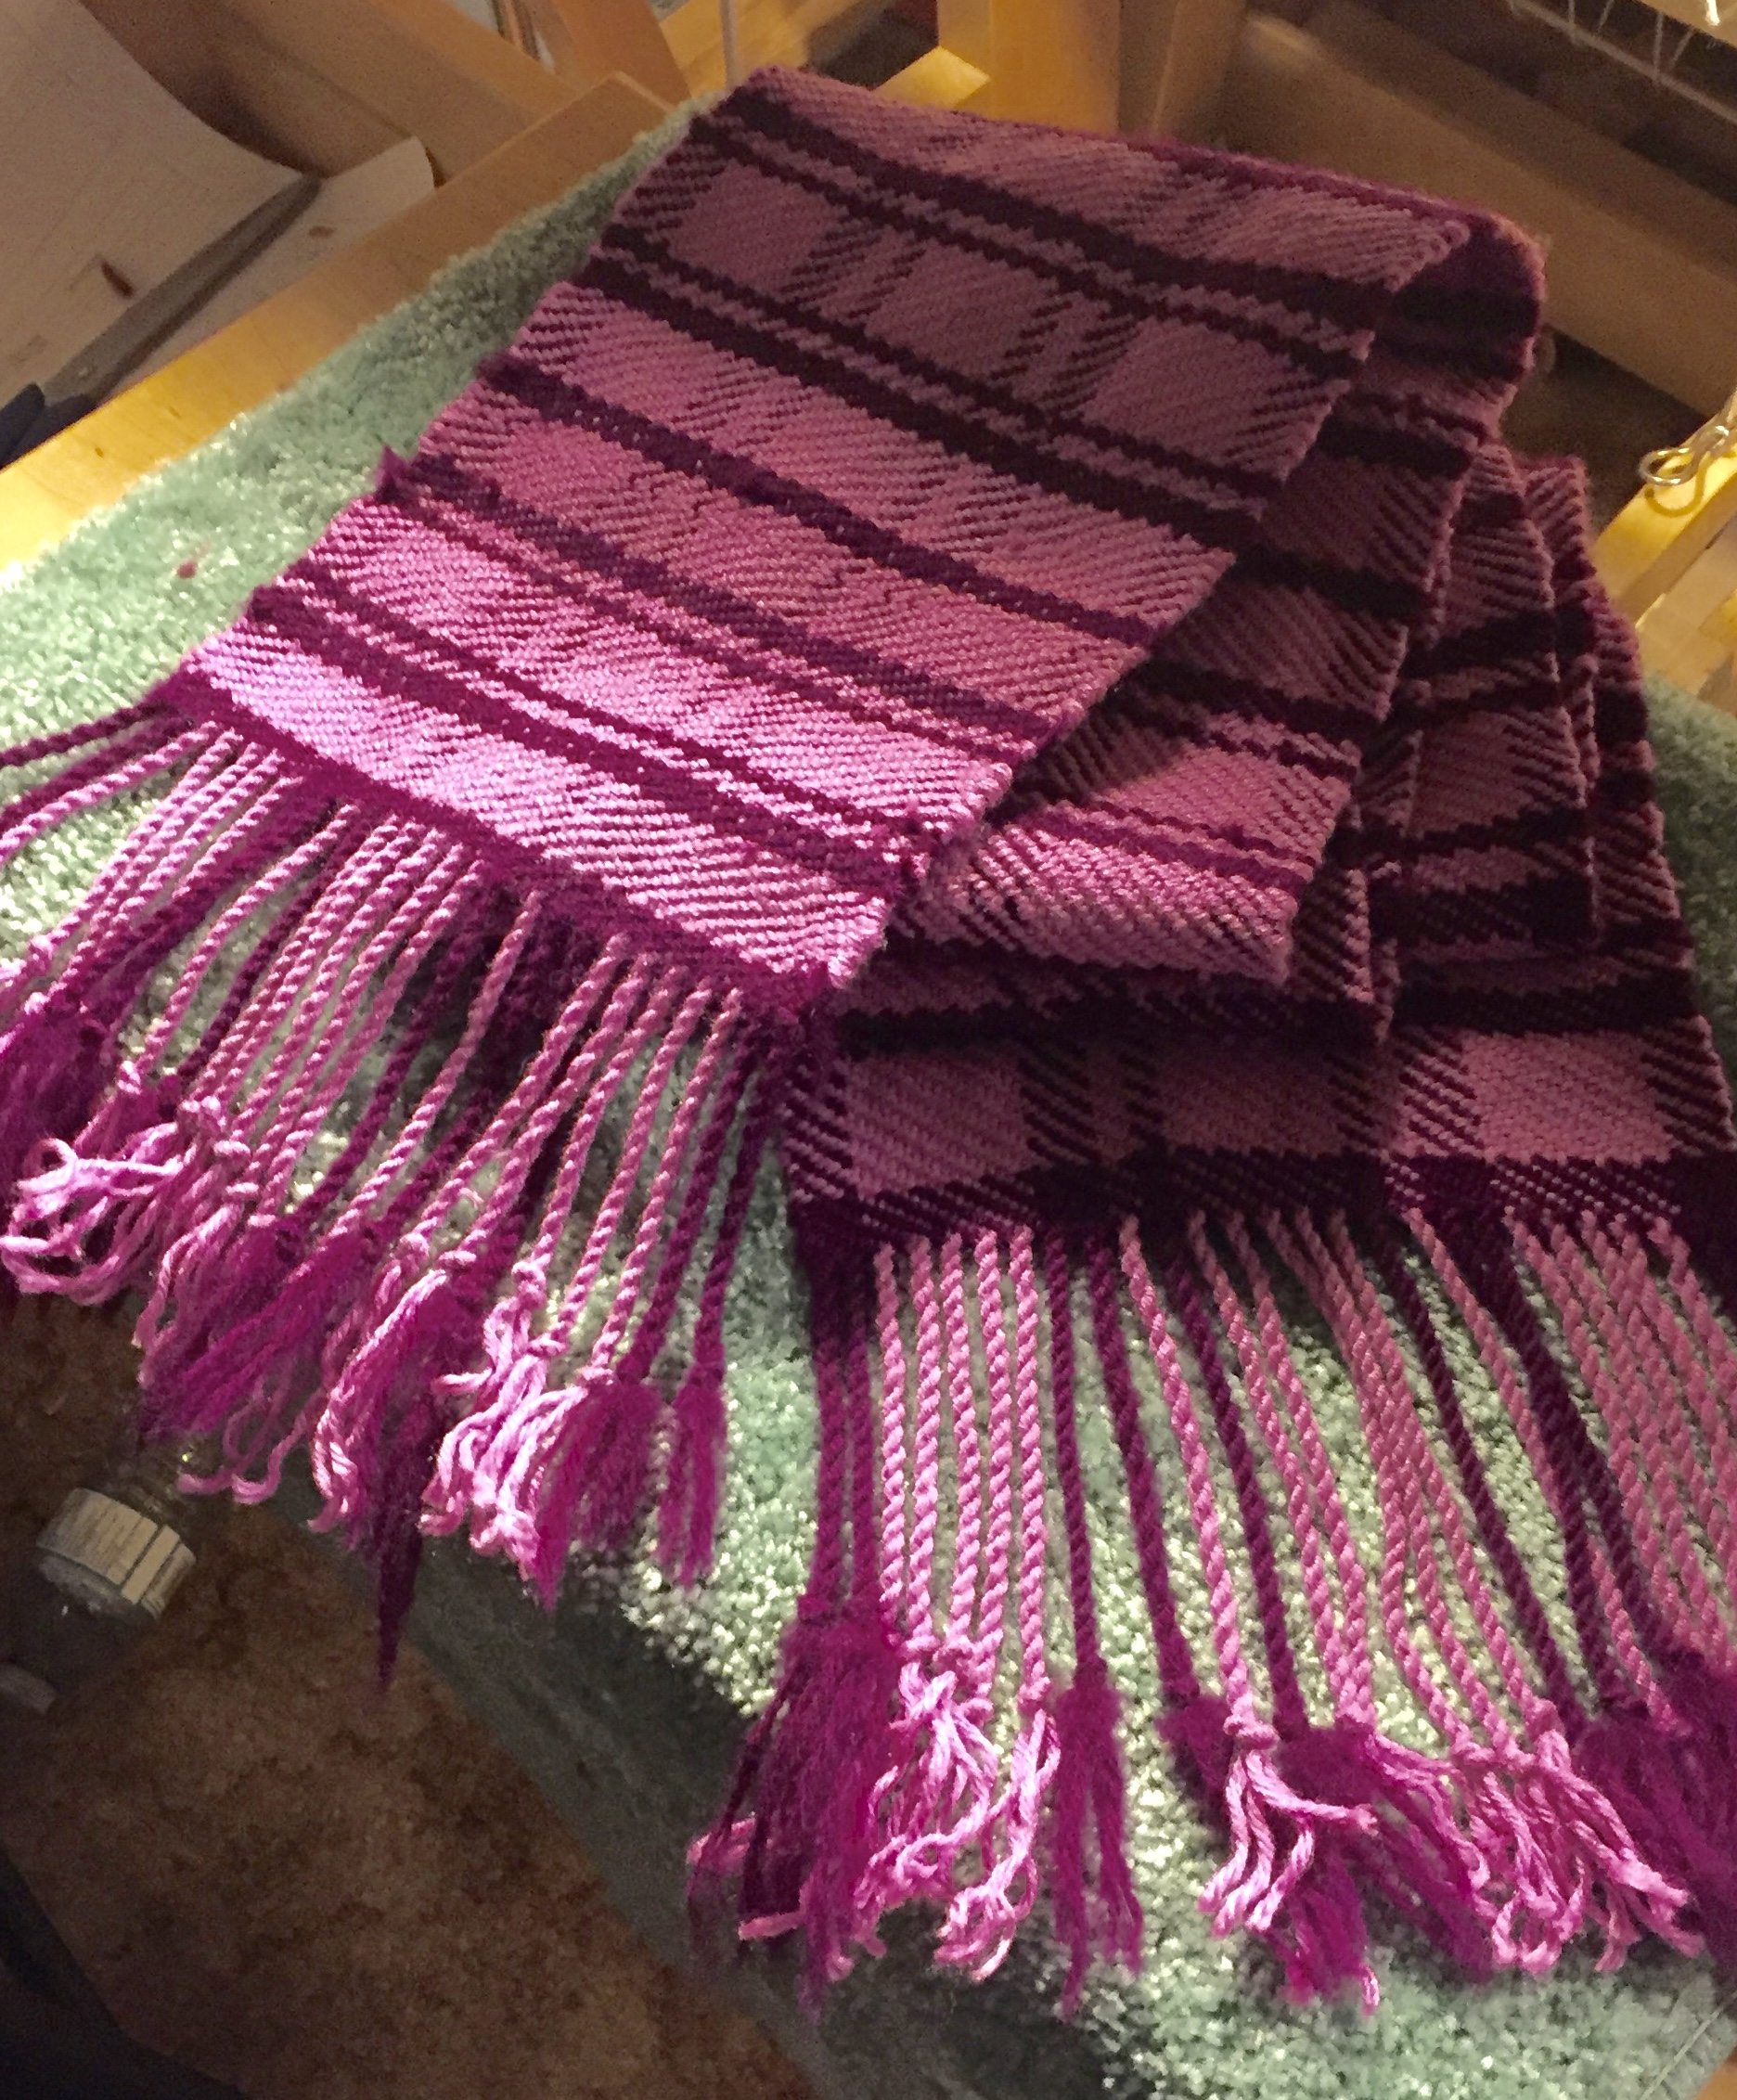 Check out the weaving pattern for this cute pink handwoven scarf!